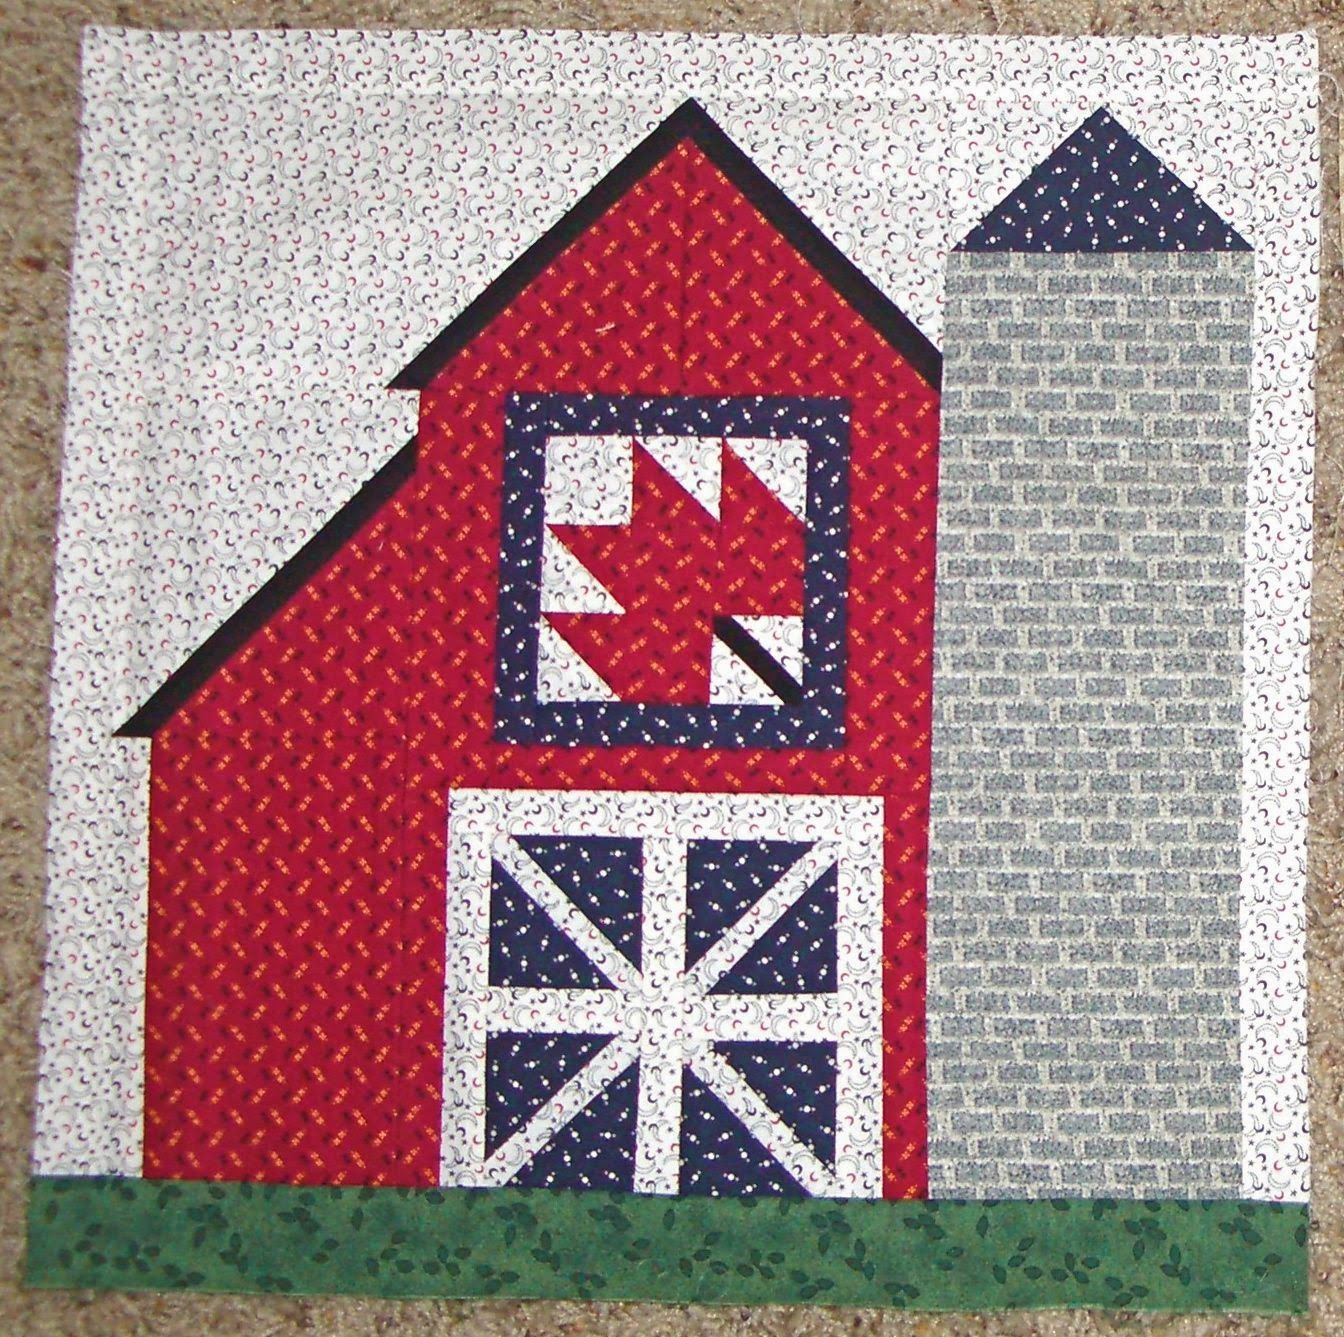 barn quilt meanings - Google Search | Barn quilt patterns ...